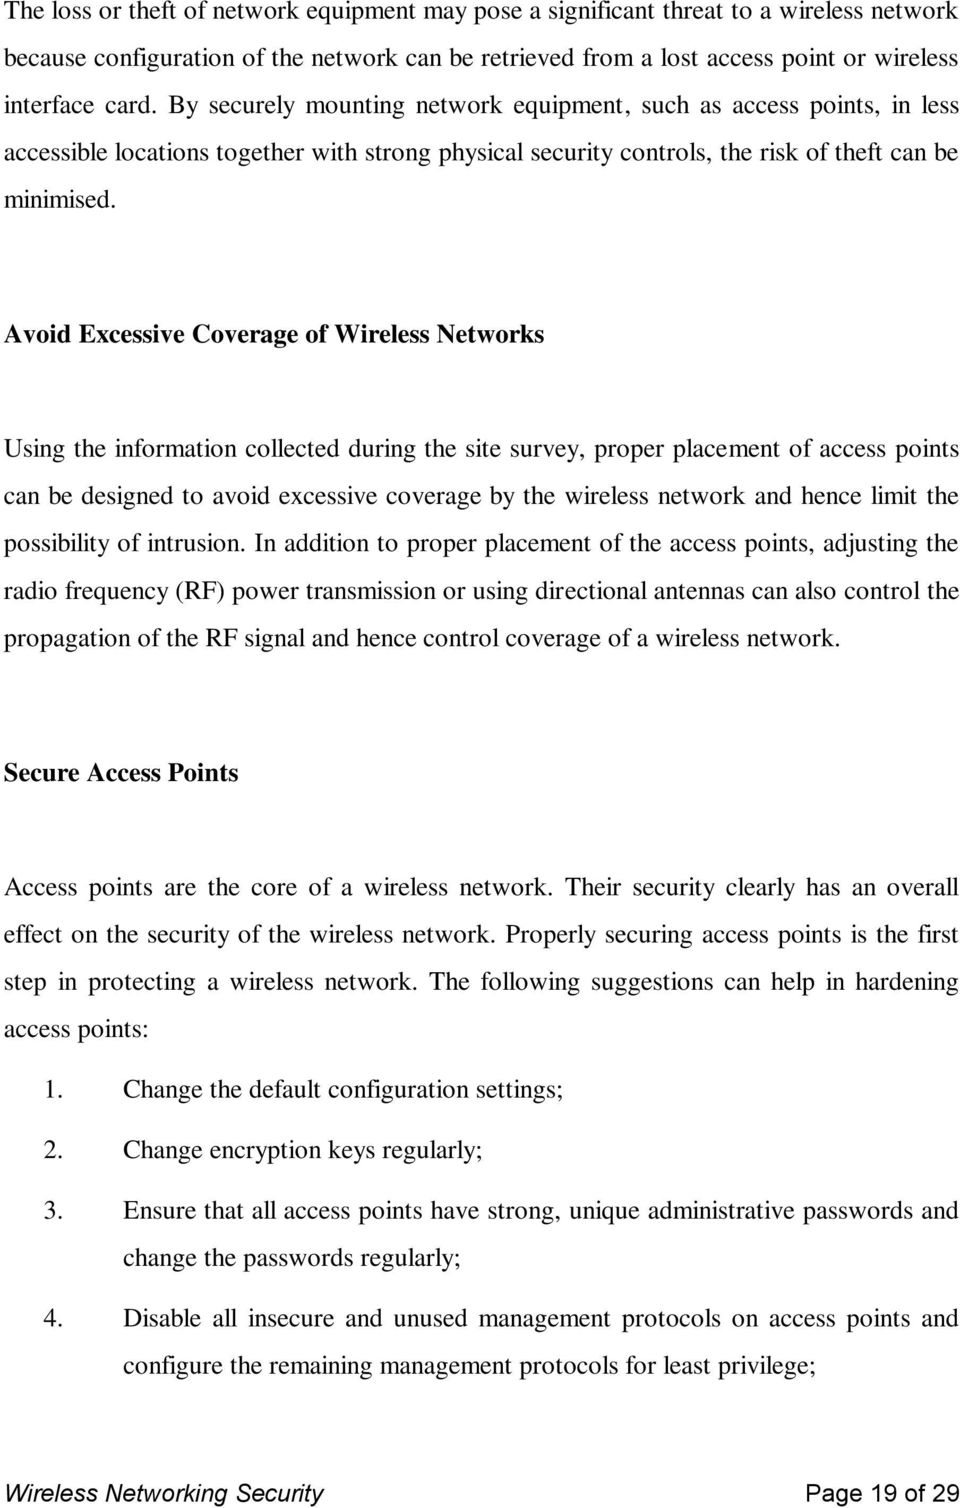 Avoid Excessive Coverage of Wireless Networks Using the information collected during the site survey, proper placement of access points can be designed to avoid excessive coverage by the wireless